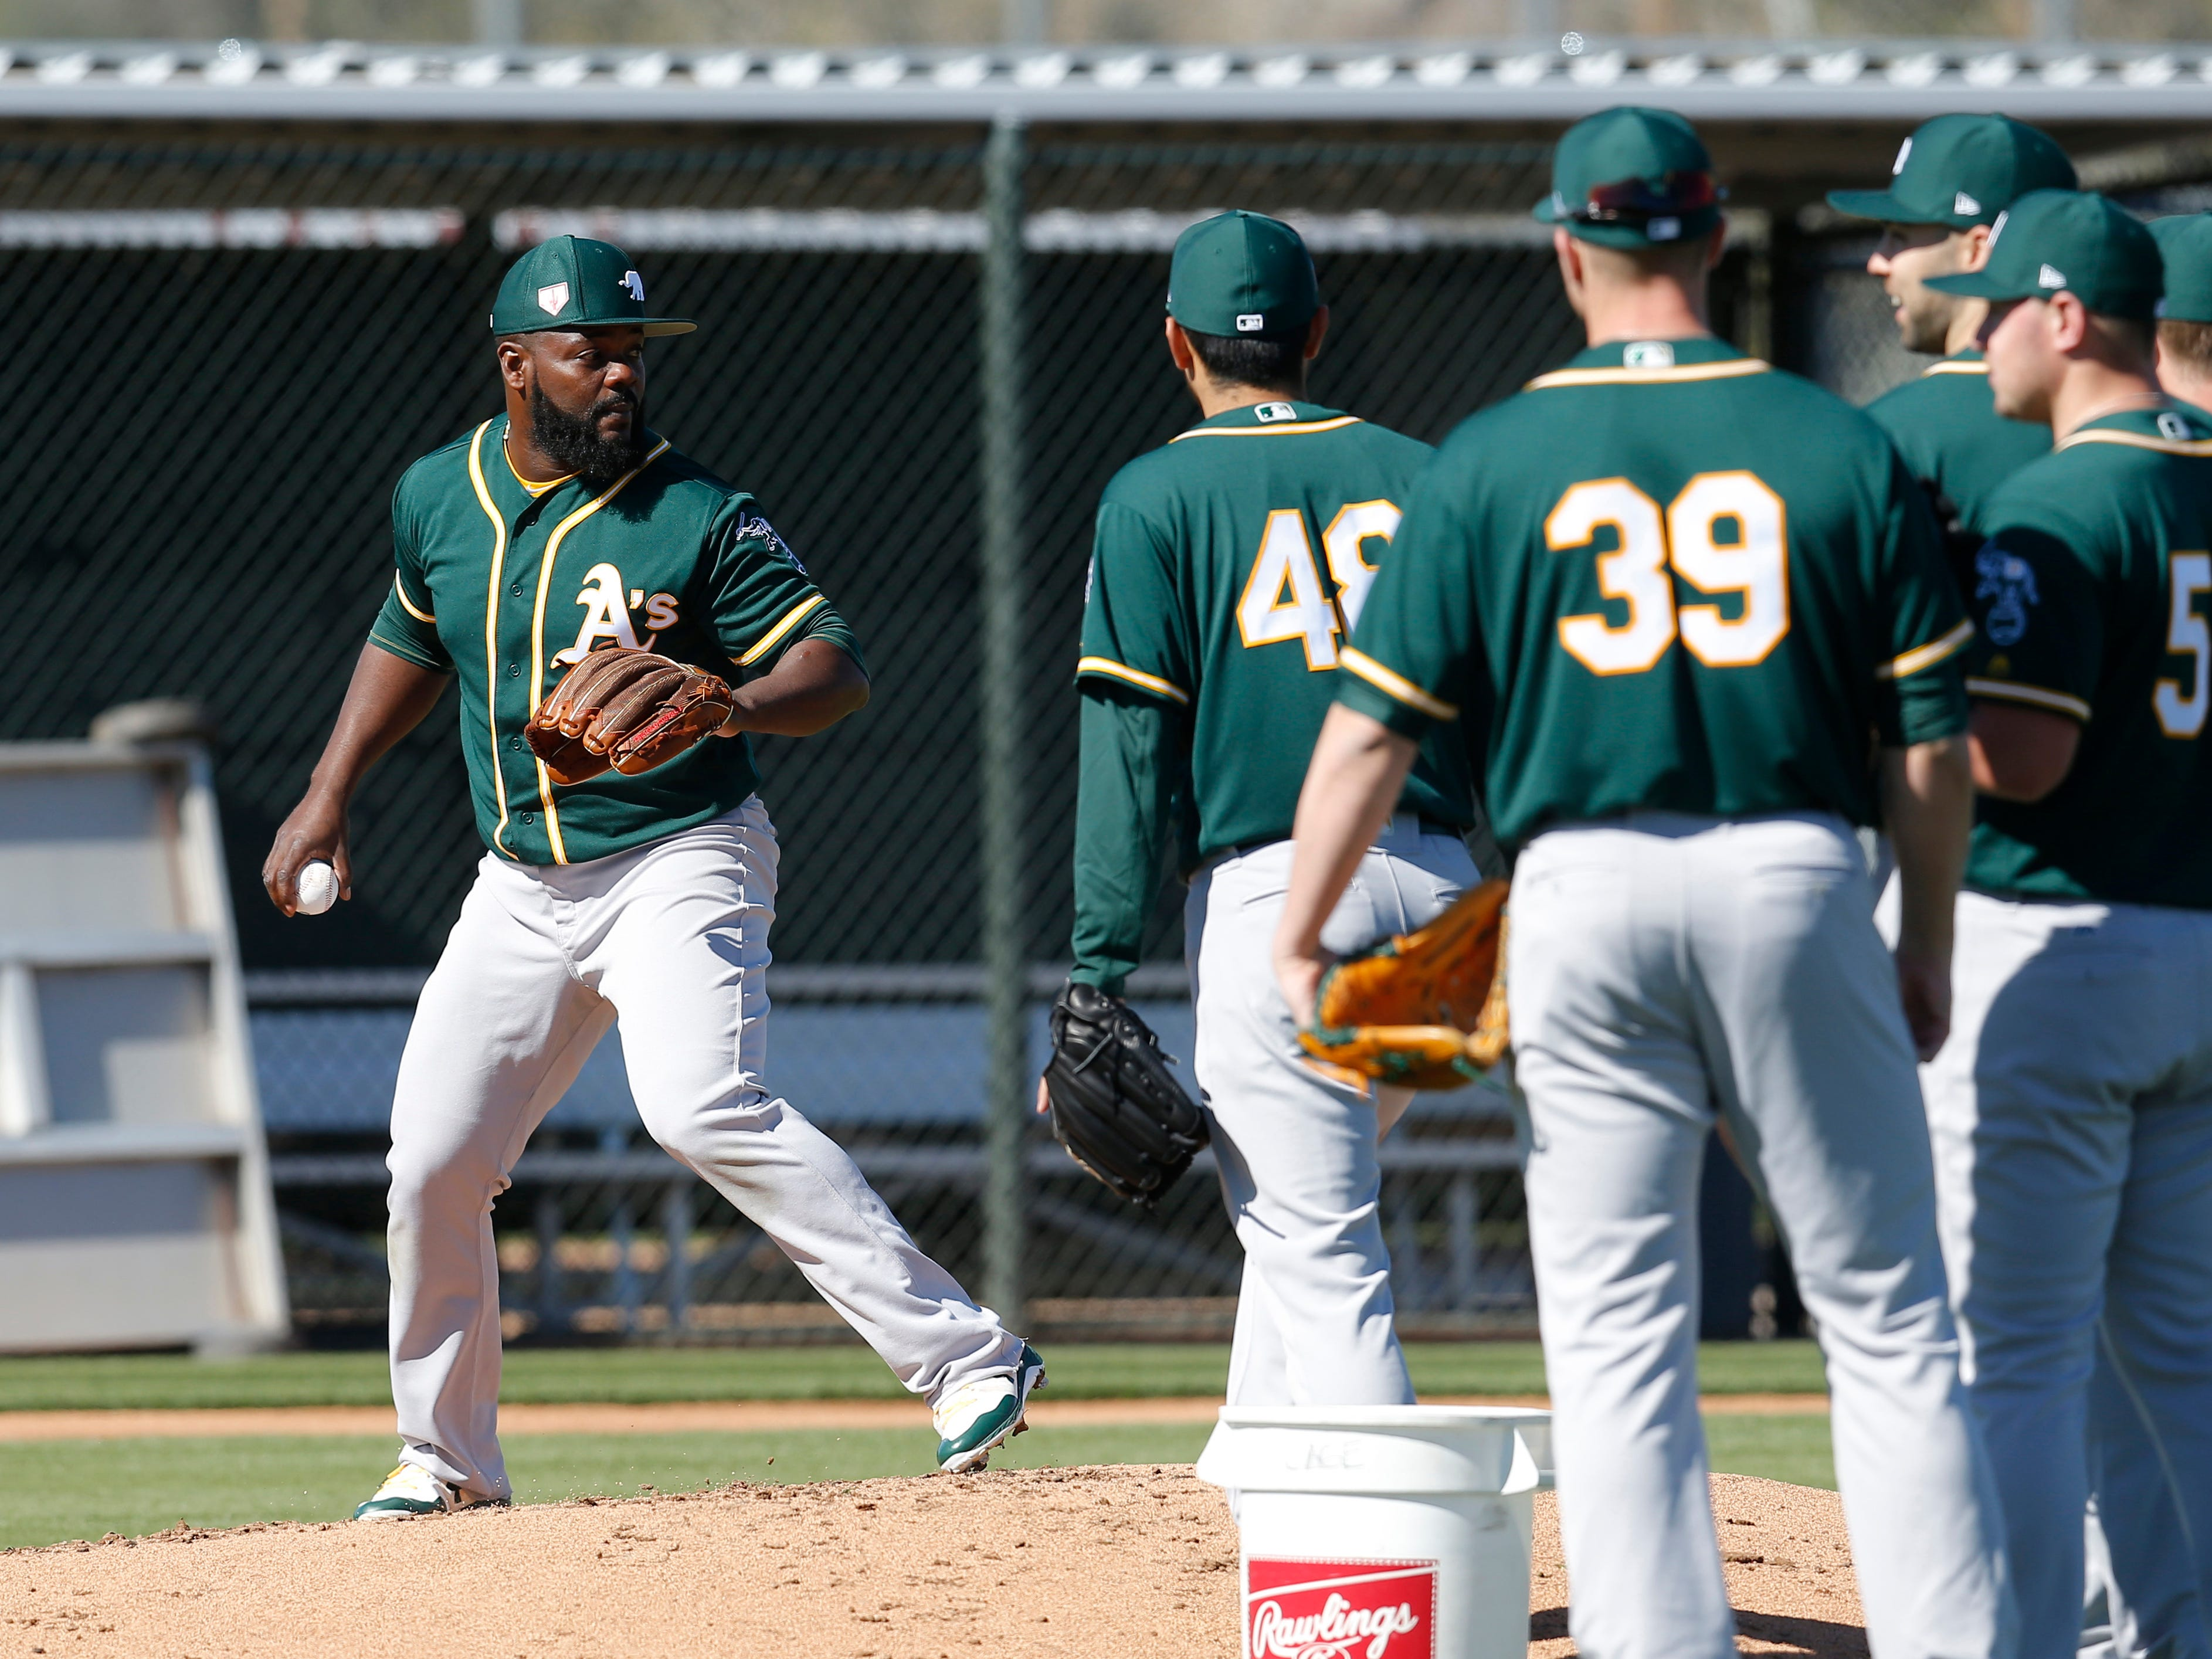 Feb 11: Athletics relief pitcher Fernando Rodney leads drills during spring training.